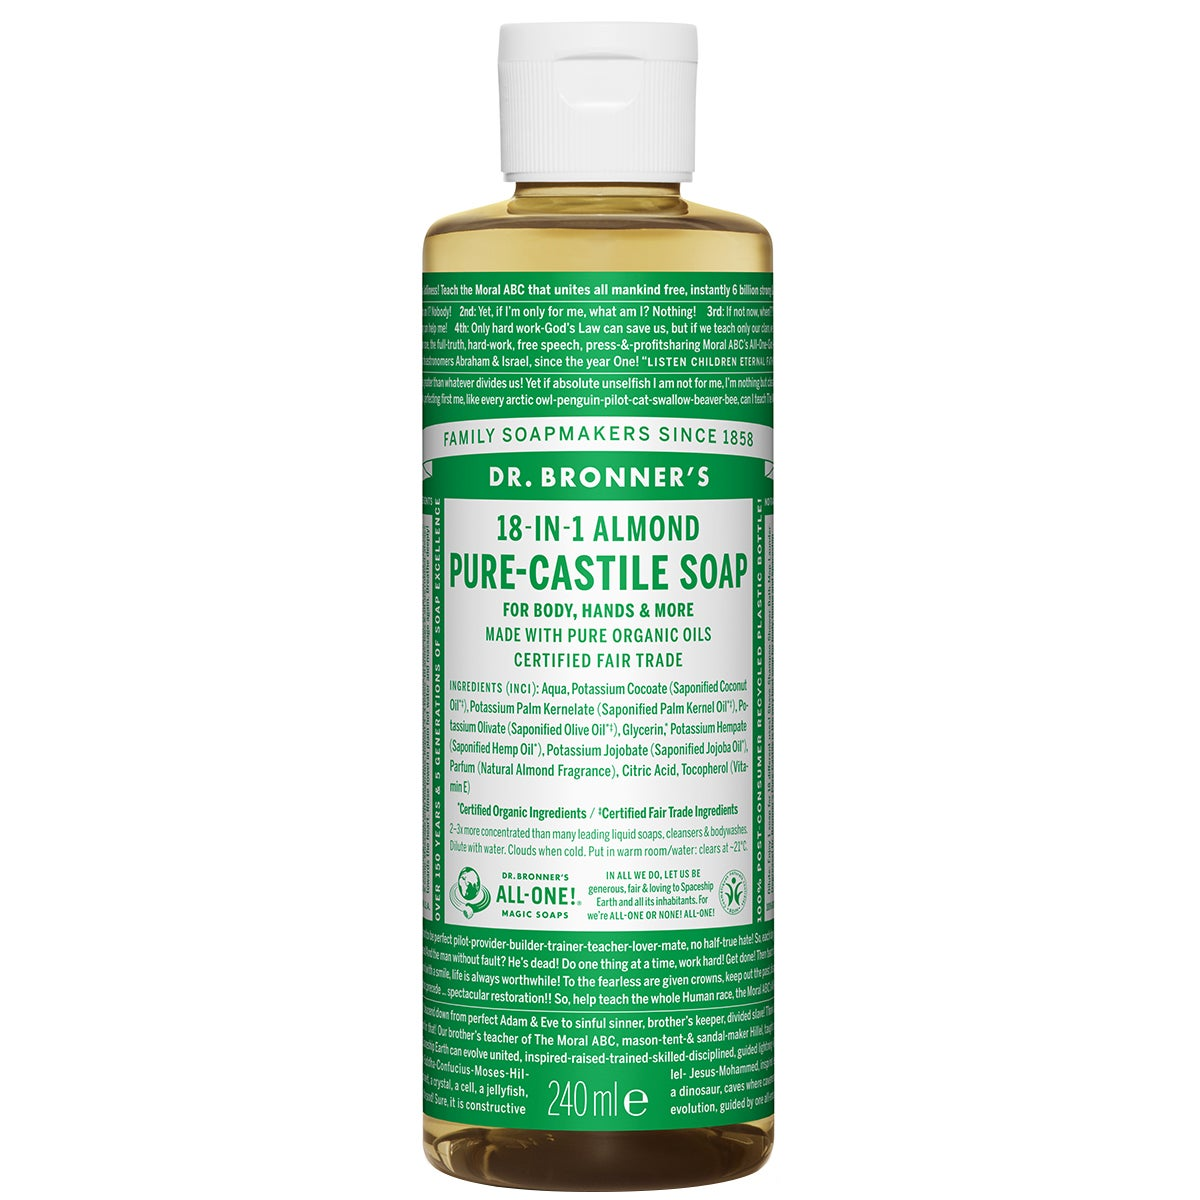 Dr. Bronner's Magic Soaps Almond